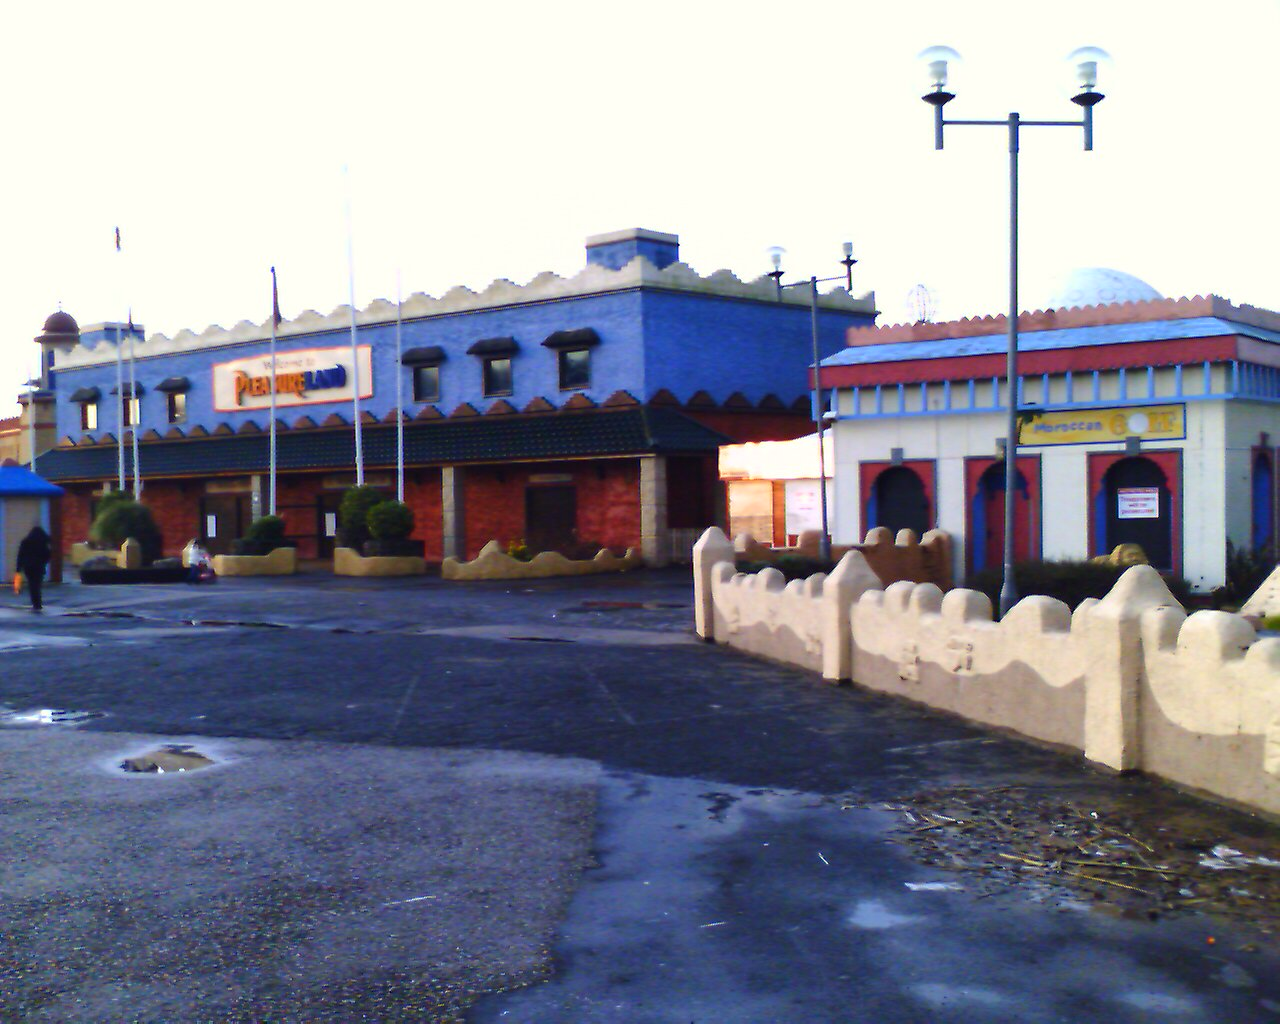 Closed Pleasureland